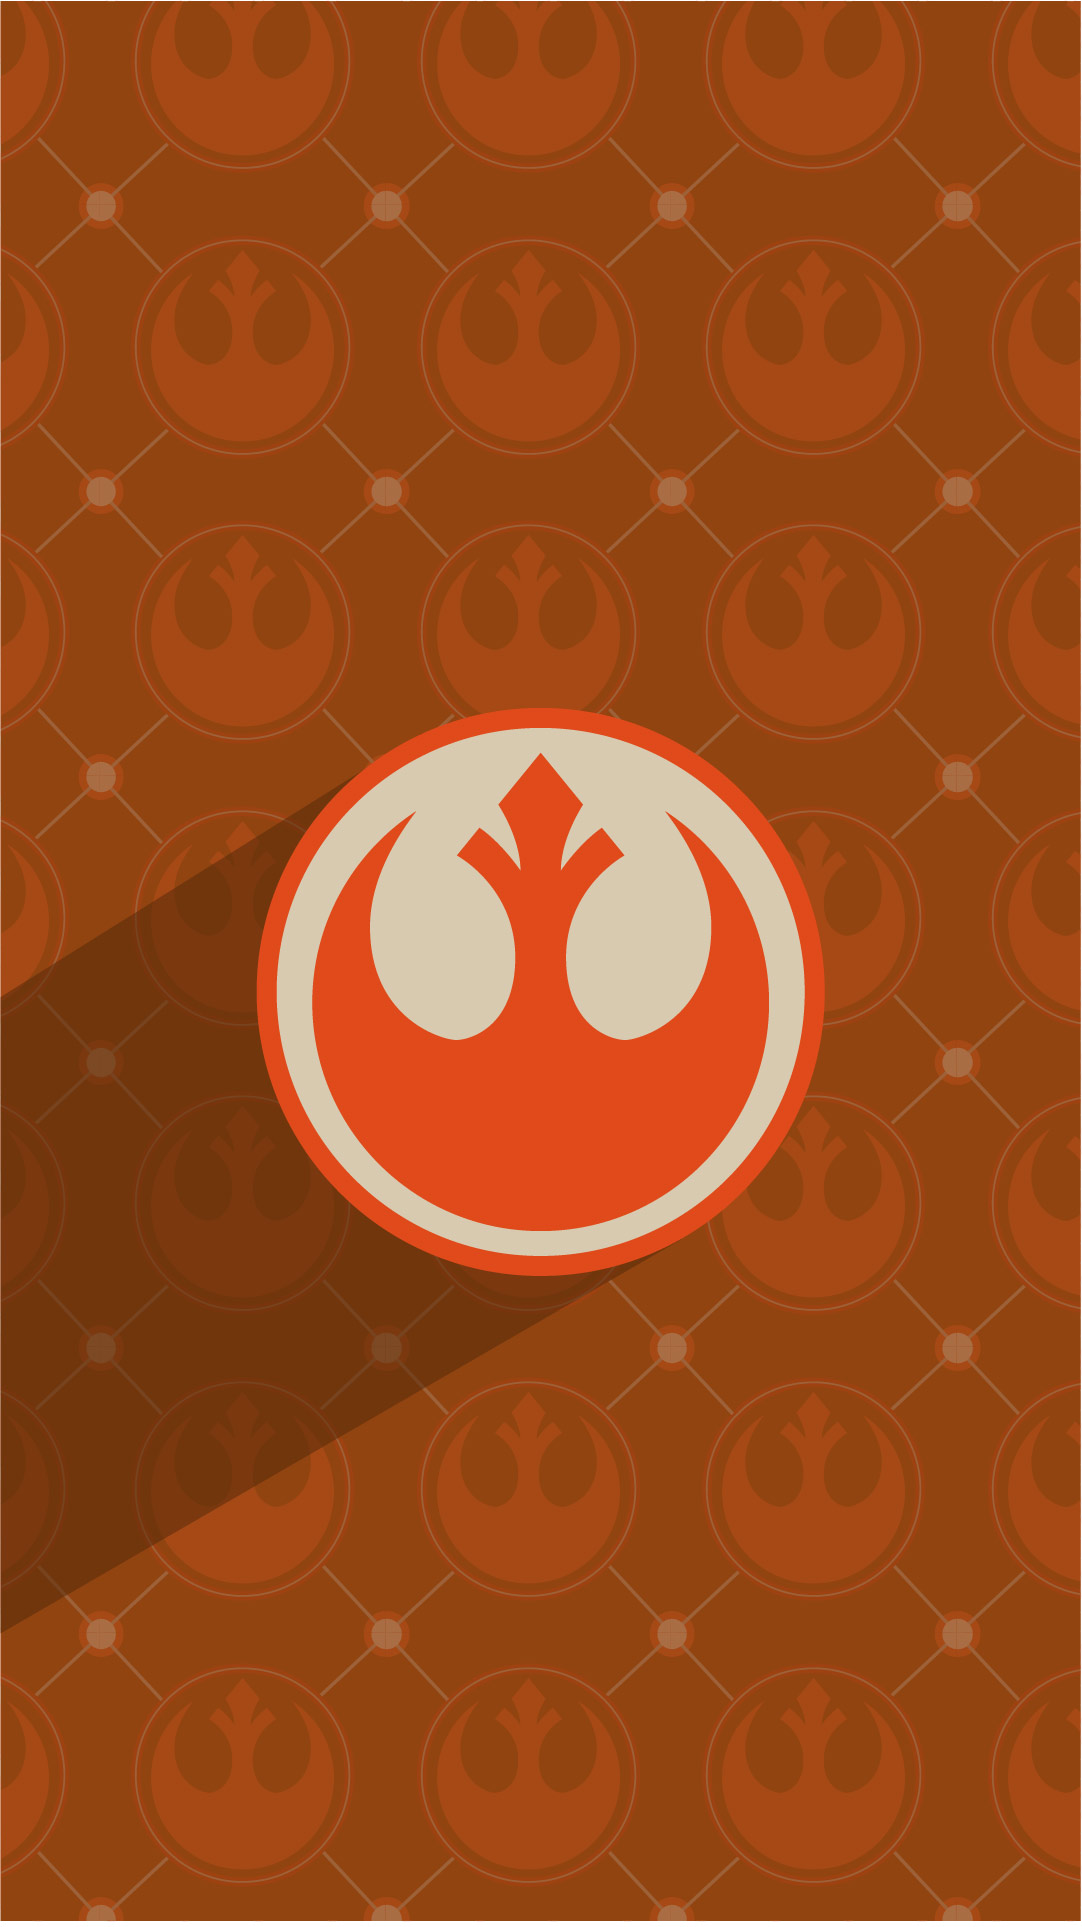 Star Wars Rebel Wallpaper Posted By Ethan Cunningham